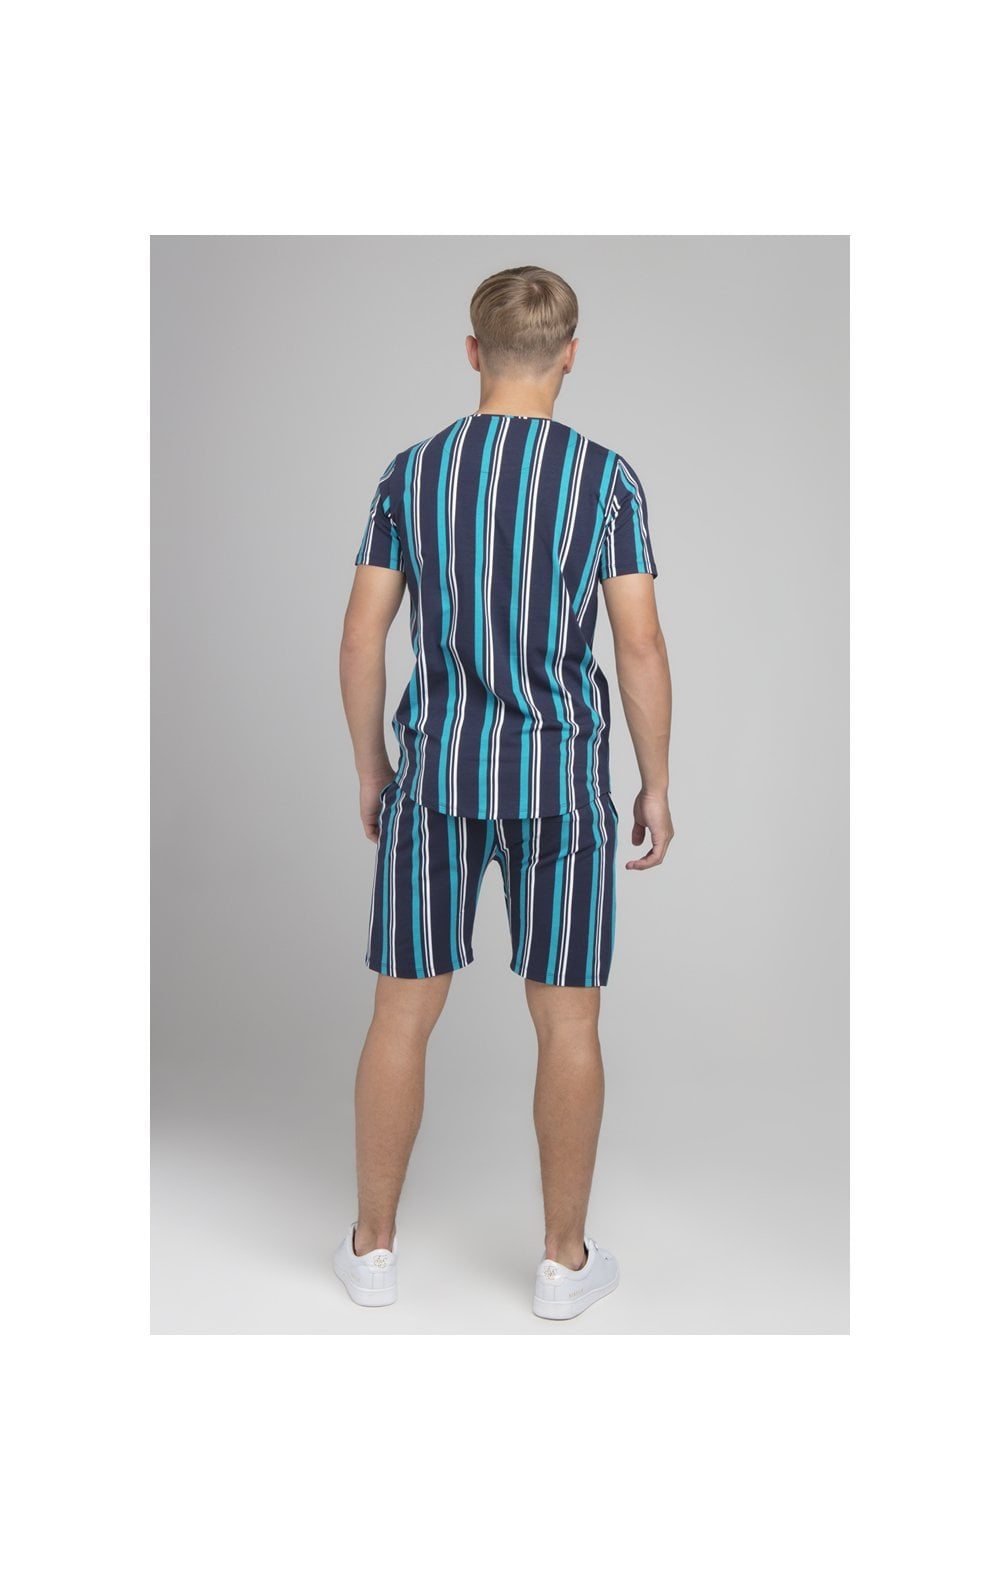 Load image into Gallery viewer, Illusive London Stripe Tee - Navy & Teal (5)